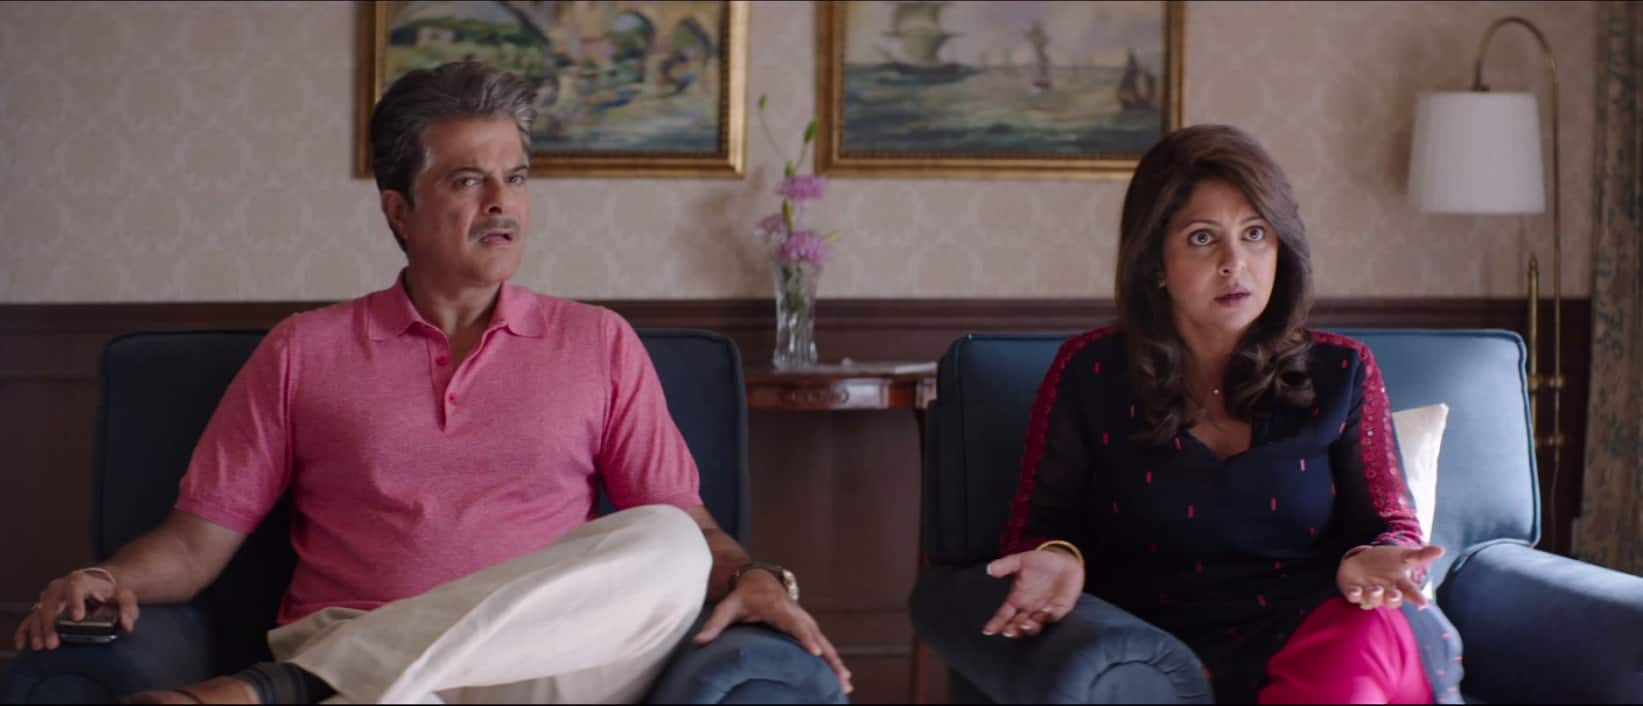 11 Bollywood Parents You Should Not Take Parenting Tips From